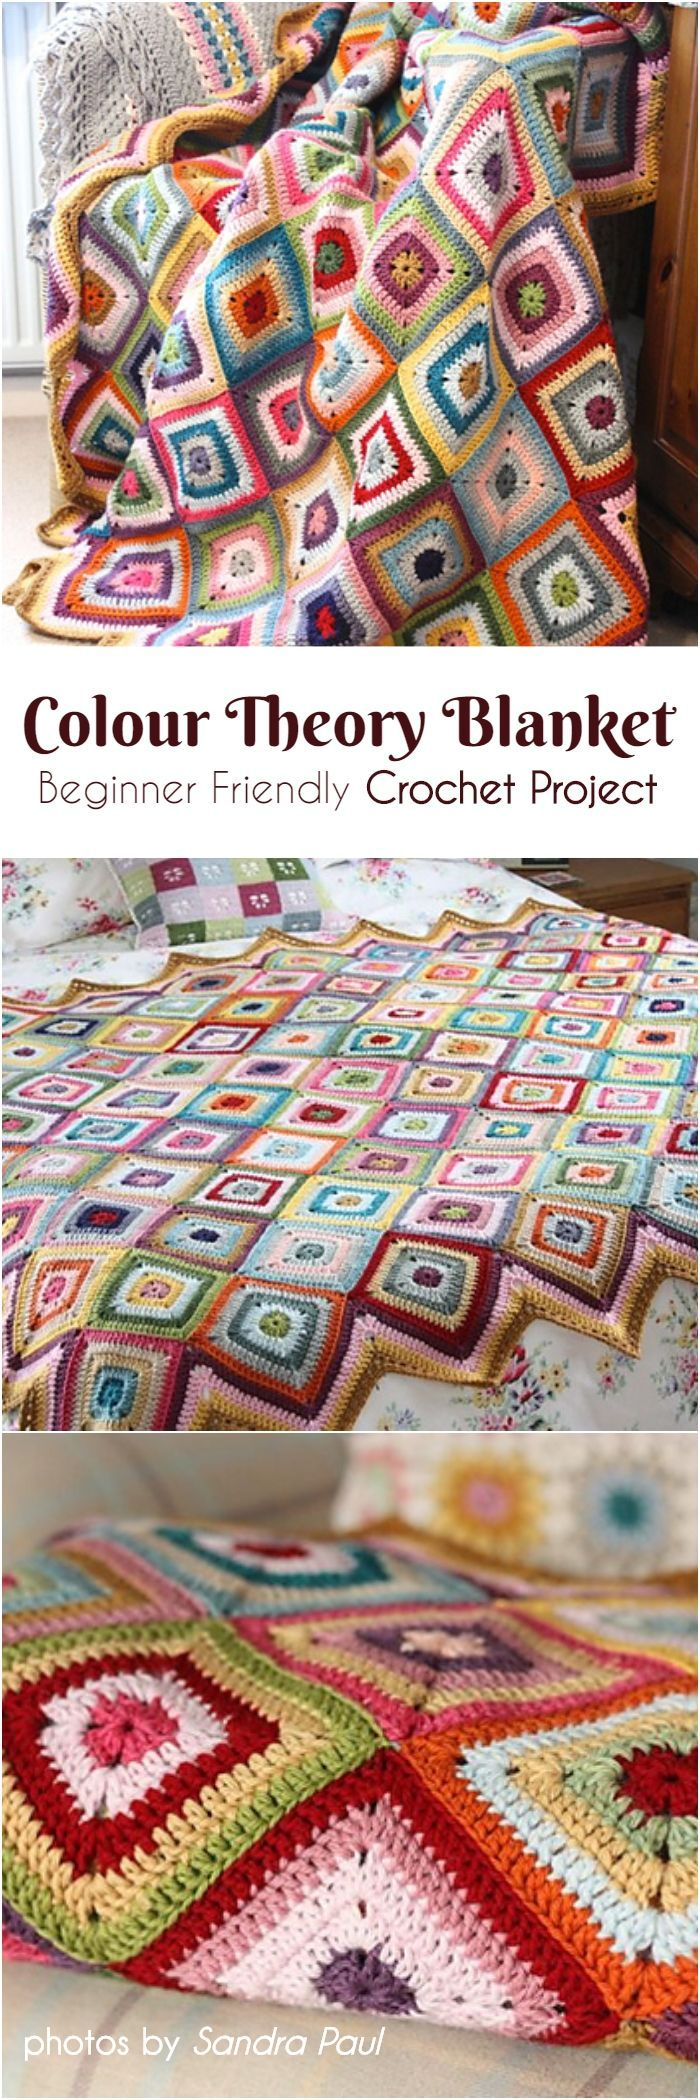 Colour Theory Blanket  Beginner Friendly Crochet Project Colour Theory Blanket  Beginner Friendly Crochet Project